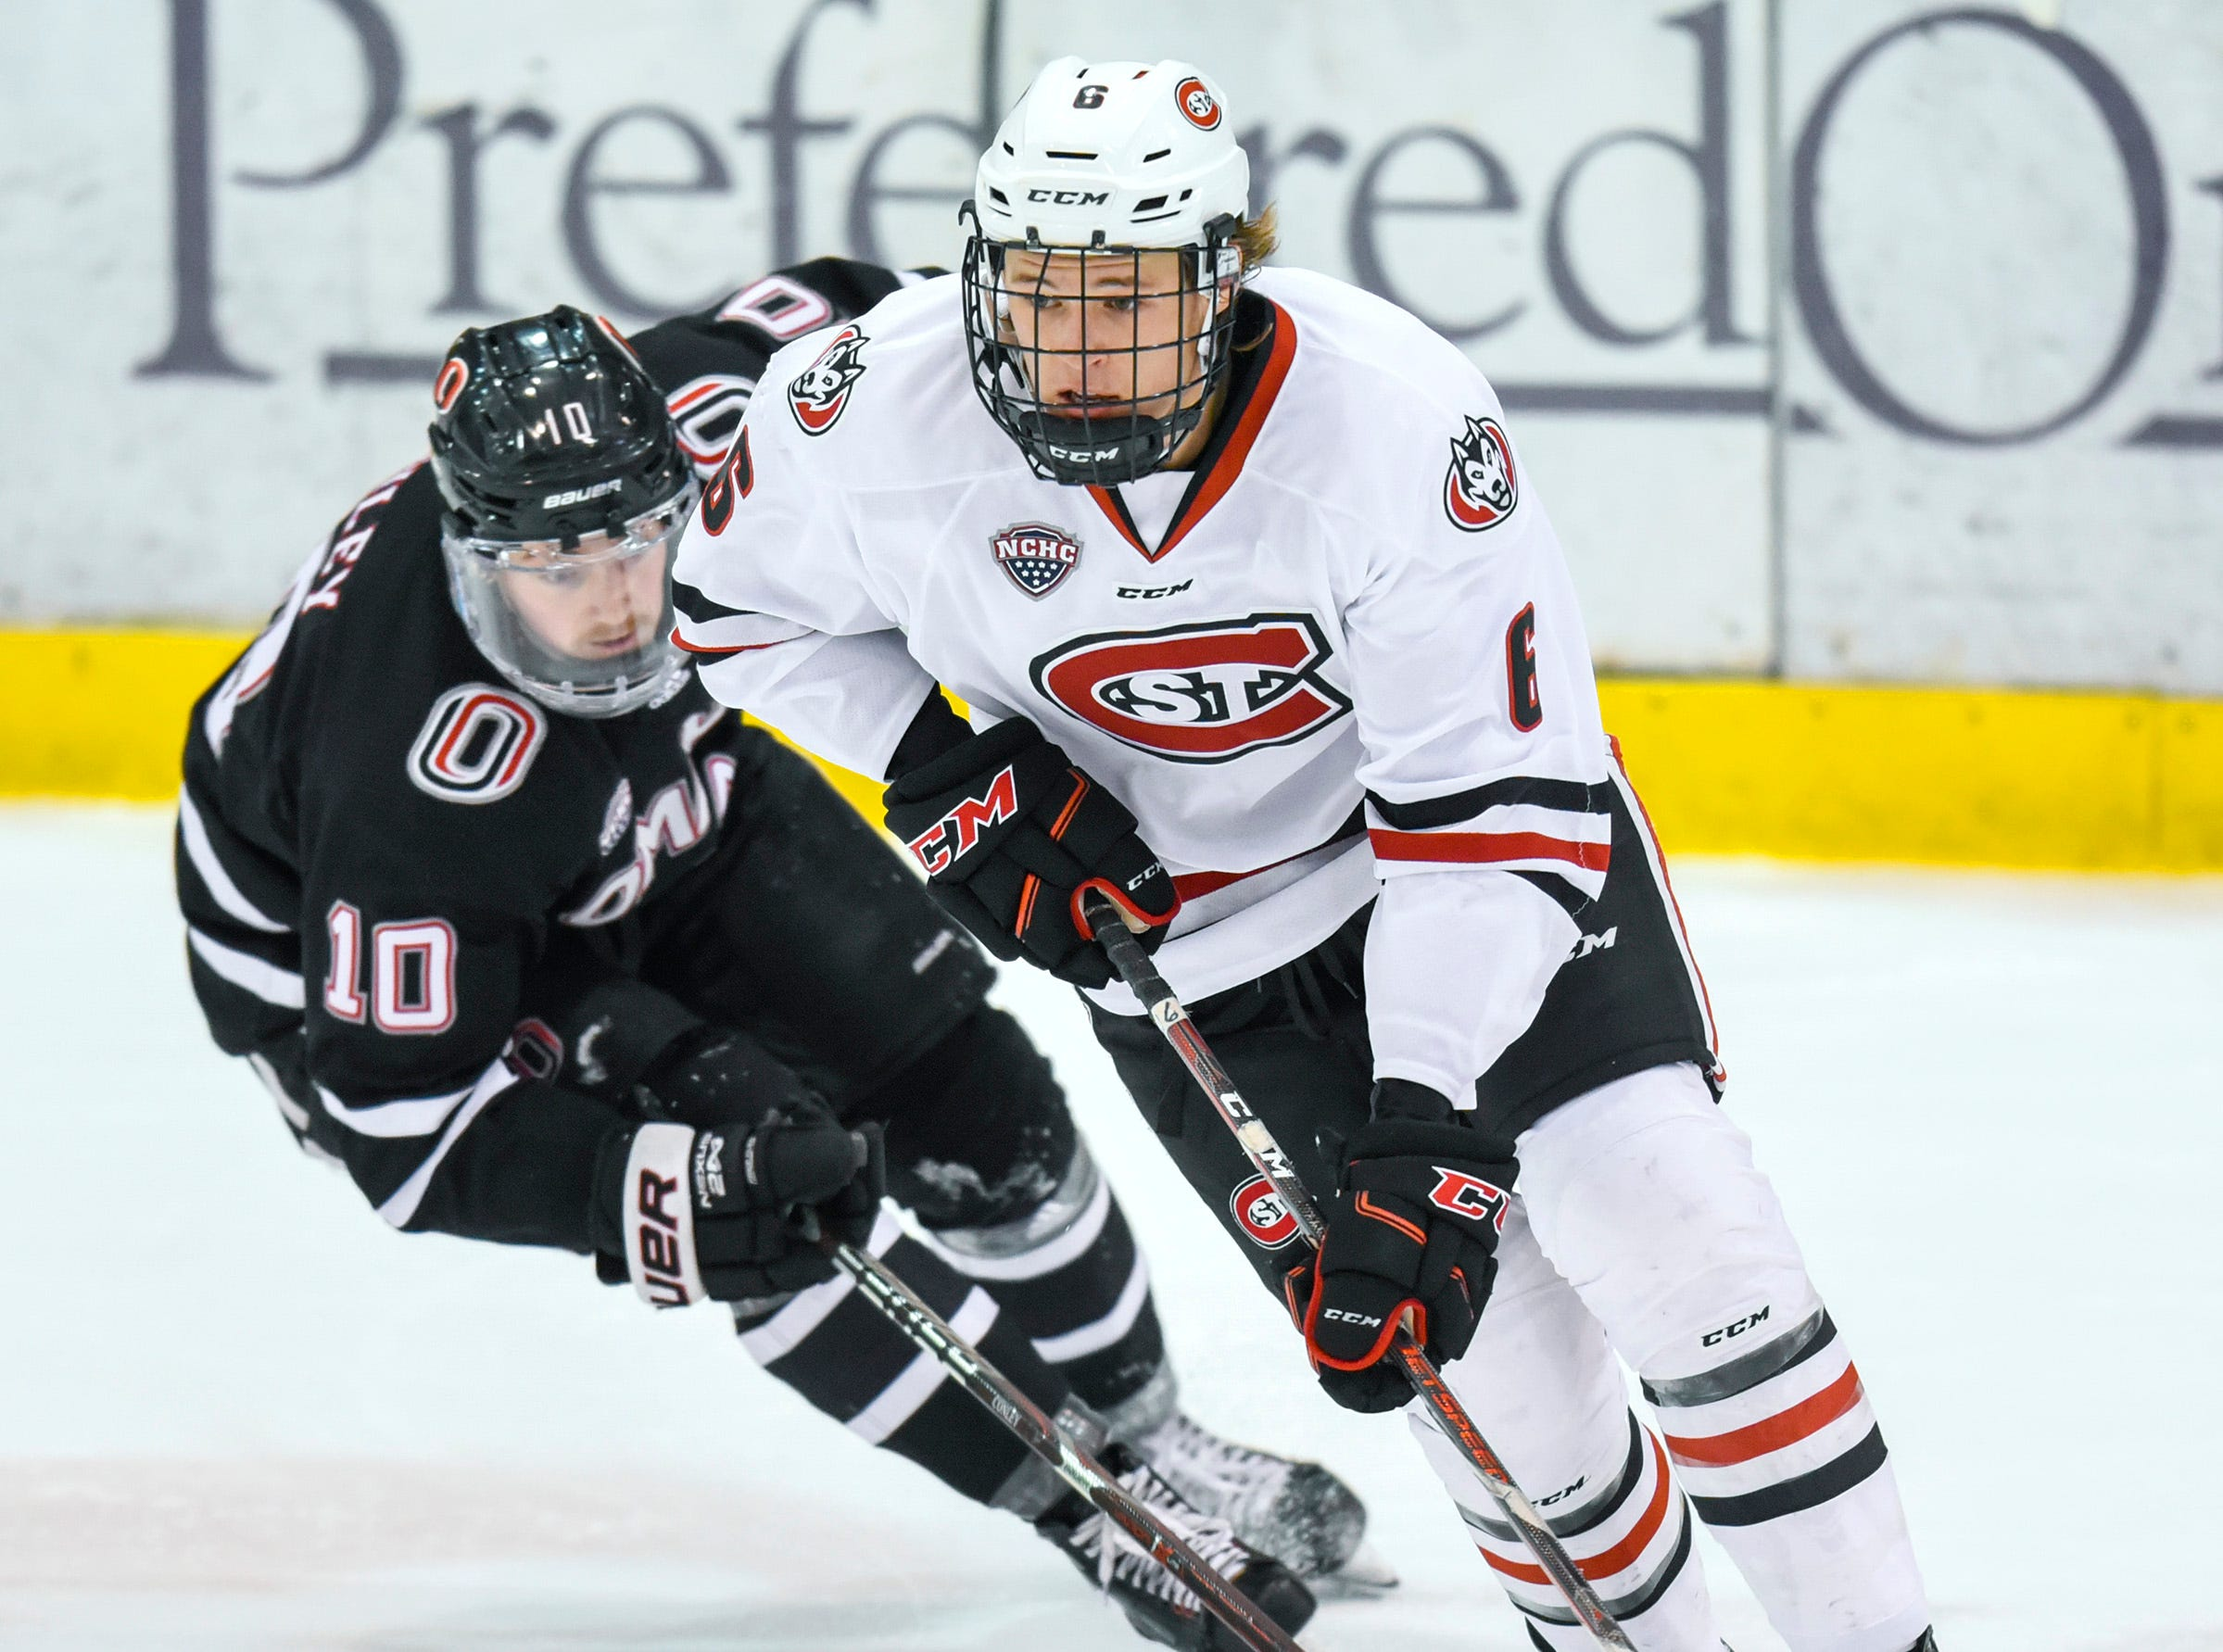 St. Cloud State's Luke Jaycox takes the puck past Nebraska-Omaha's Kevin Conley during the first period Friday, Dec. 7, at the Herb Brooks National Hockey Center.